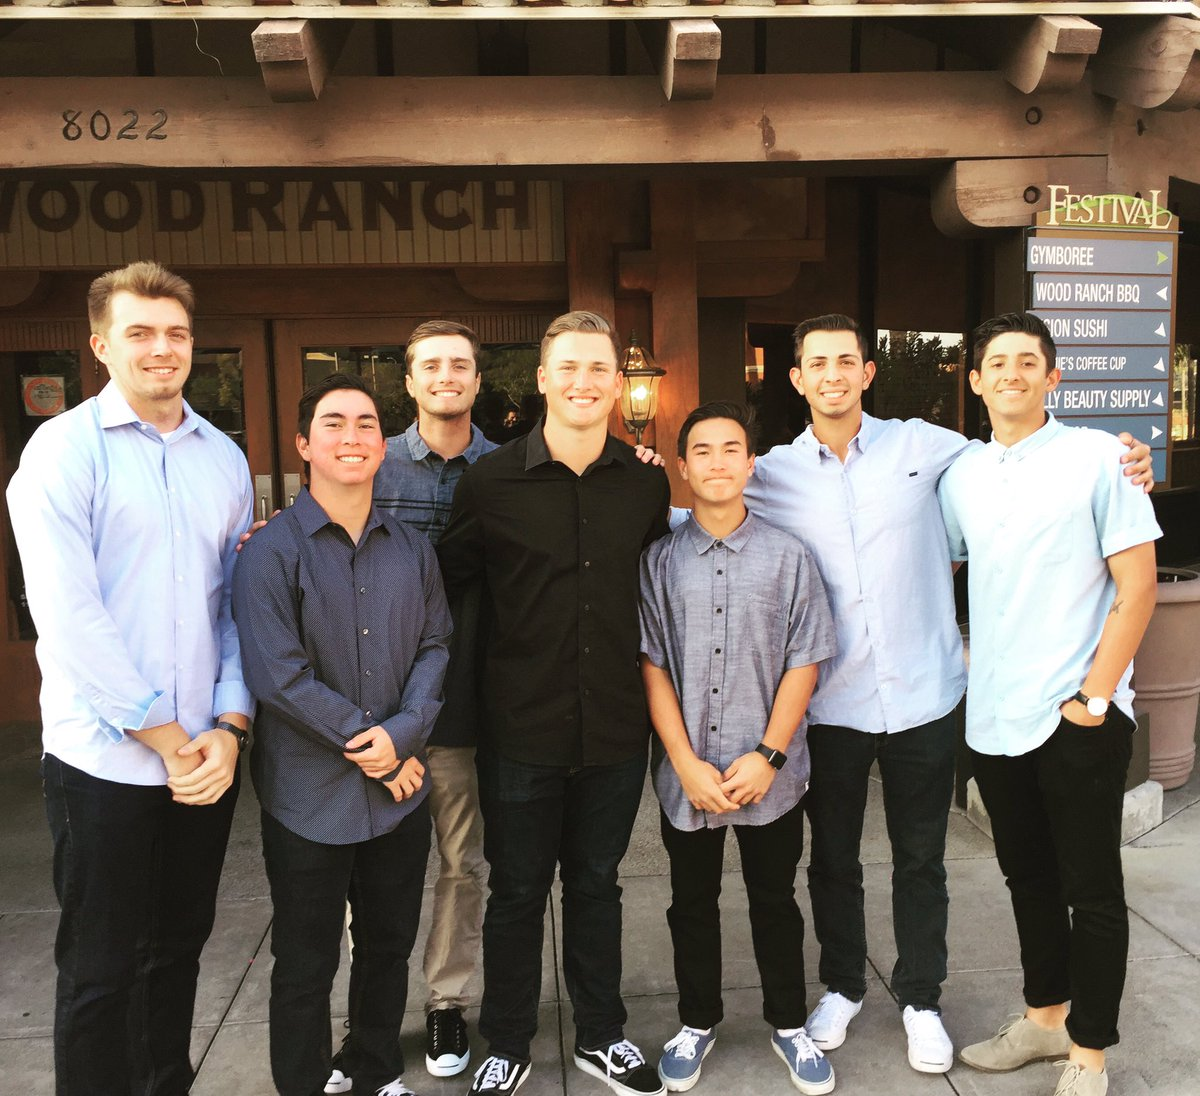 Hayden Winters On Twitter Got Treated To A Nice Spiffy Dinner By These Guys F0 9f 94 A5 F0 9f 98 8e F0 9f 98 8f